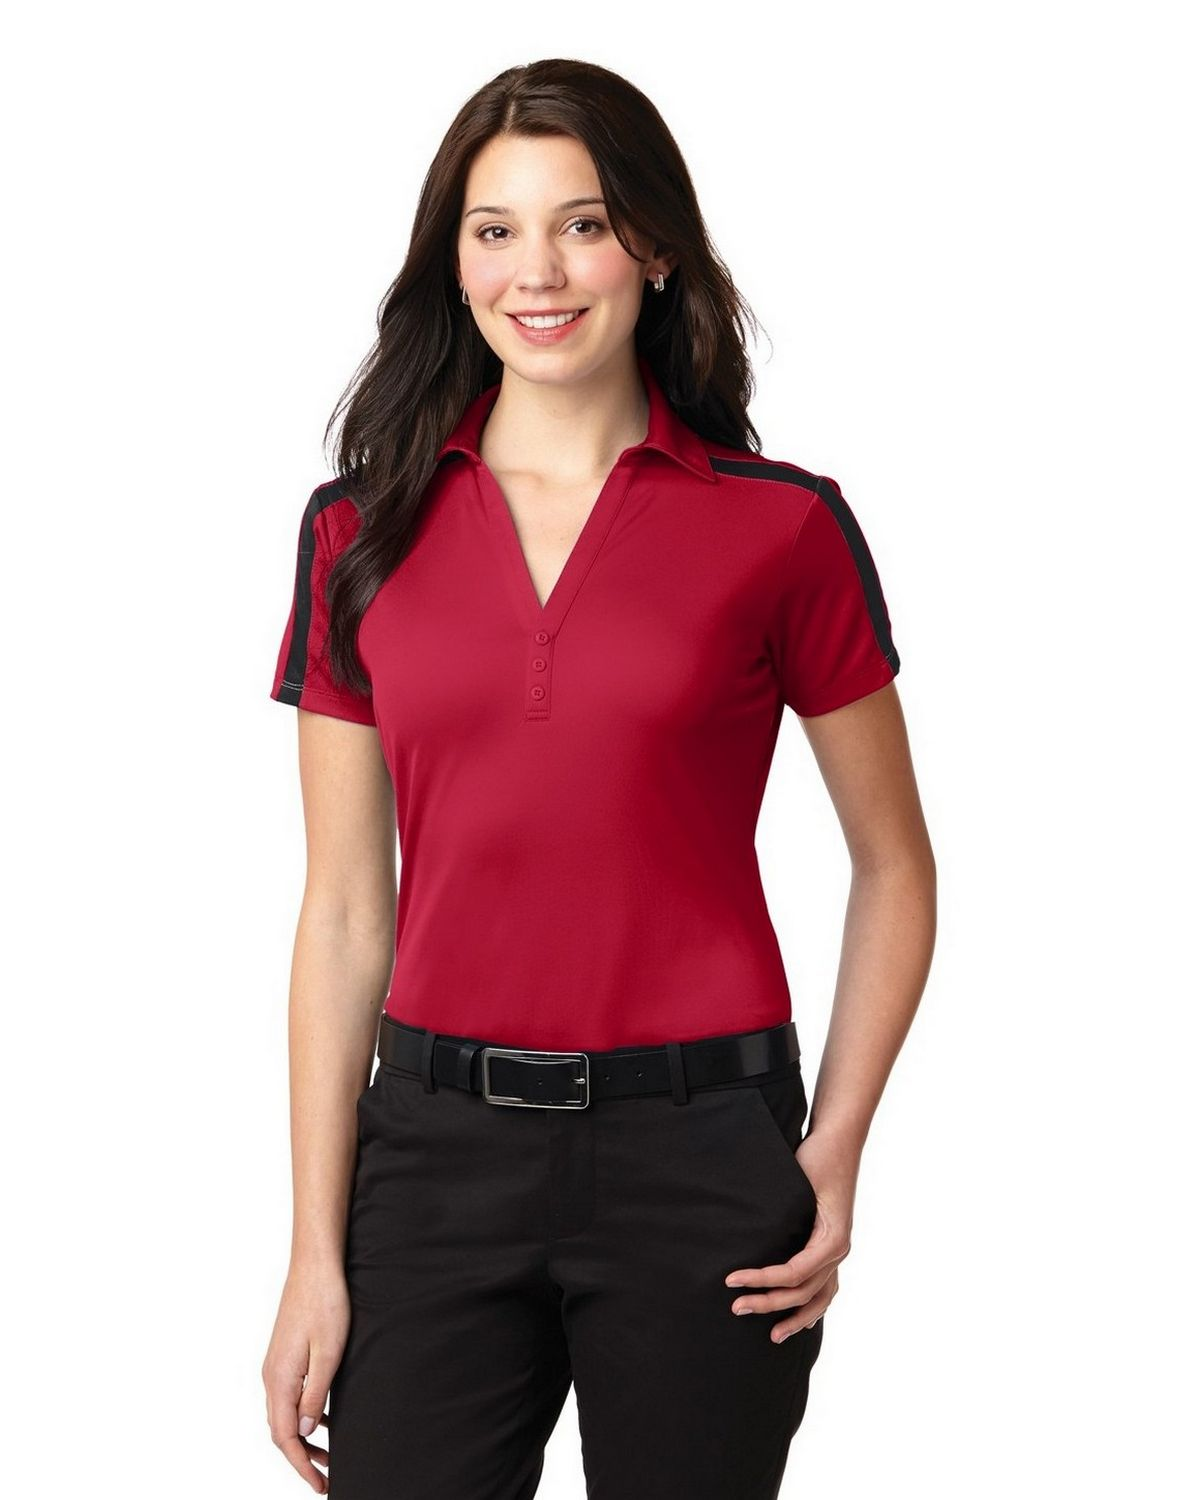 Port Authority L547 Women's Silk Touch Performance Colorblock Stripe Polo - Red/Black - XS #silk